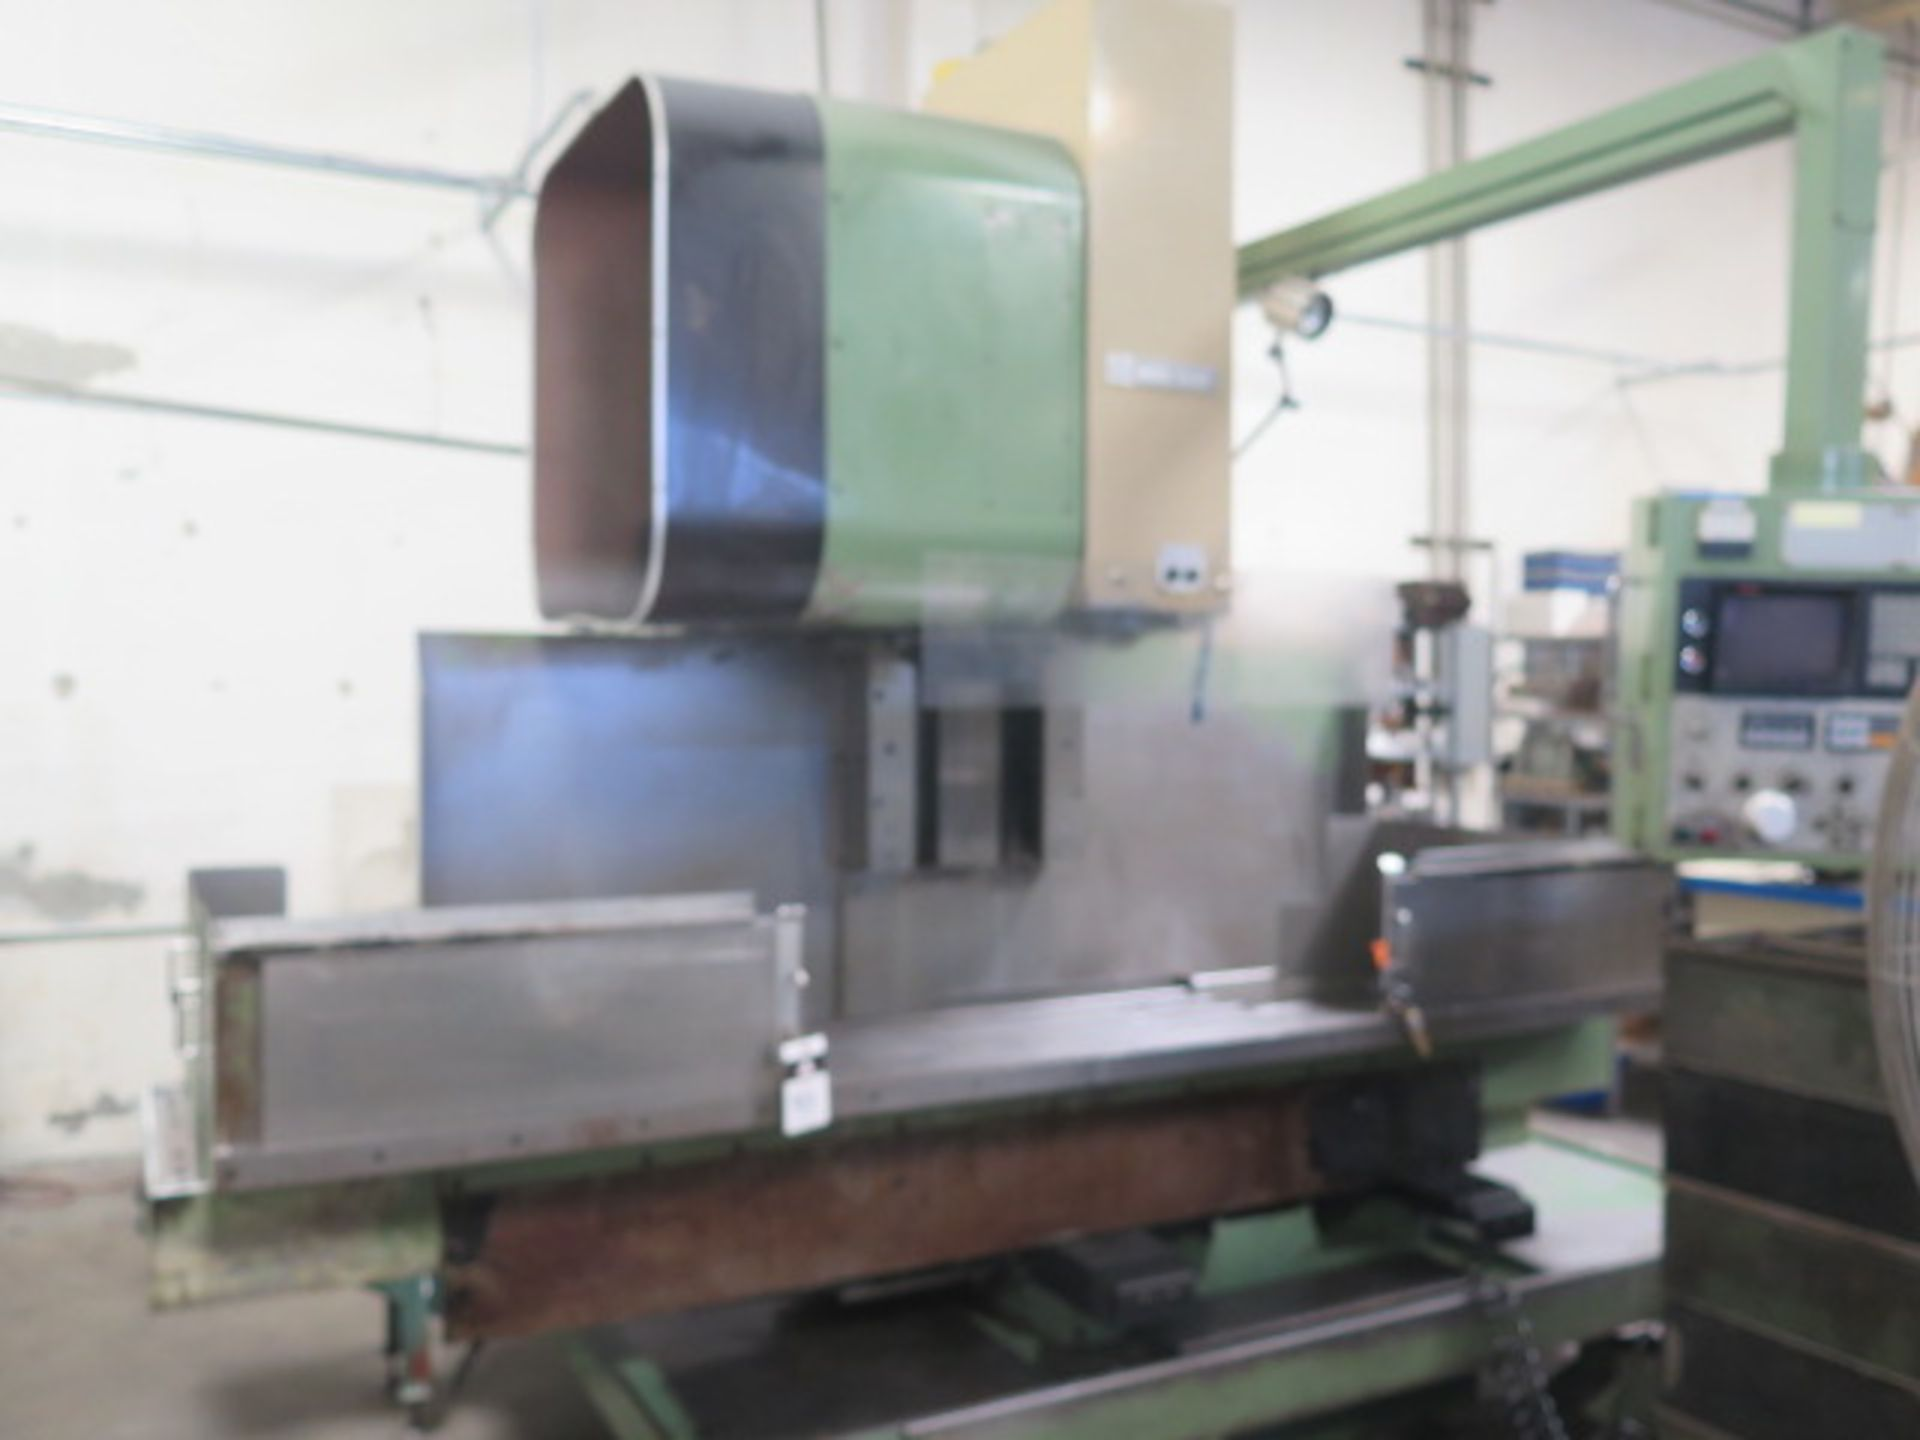 Mori Seiki MV-55 CNC Vertical Machining Center s/n 576 w/ Fanuc System 11M Controls, 24-Station ATC,